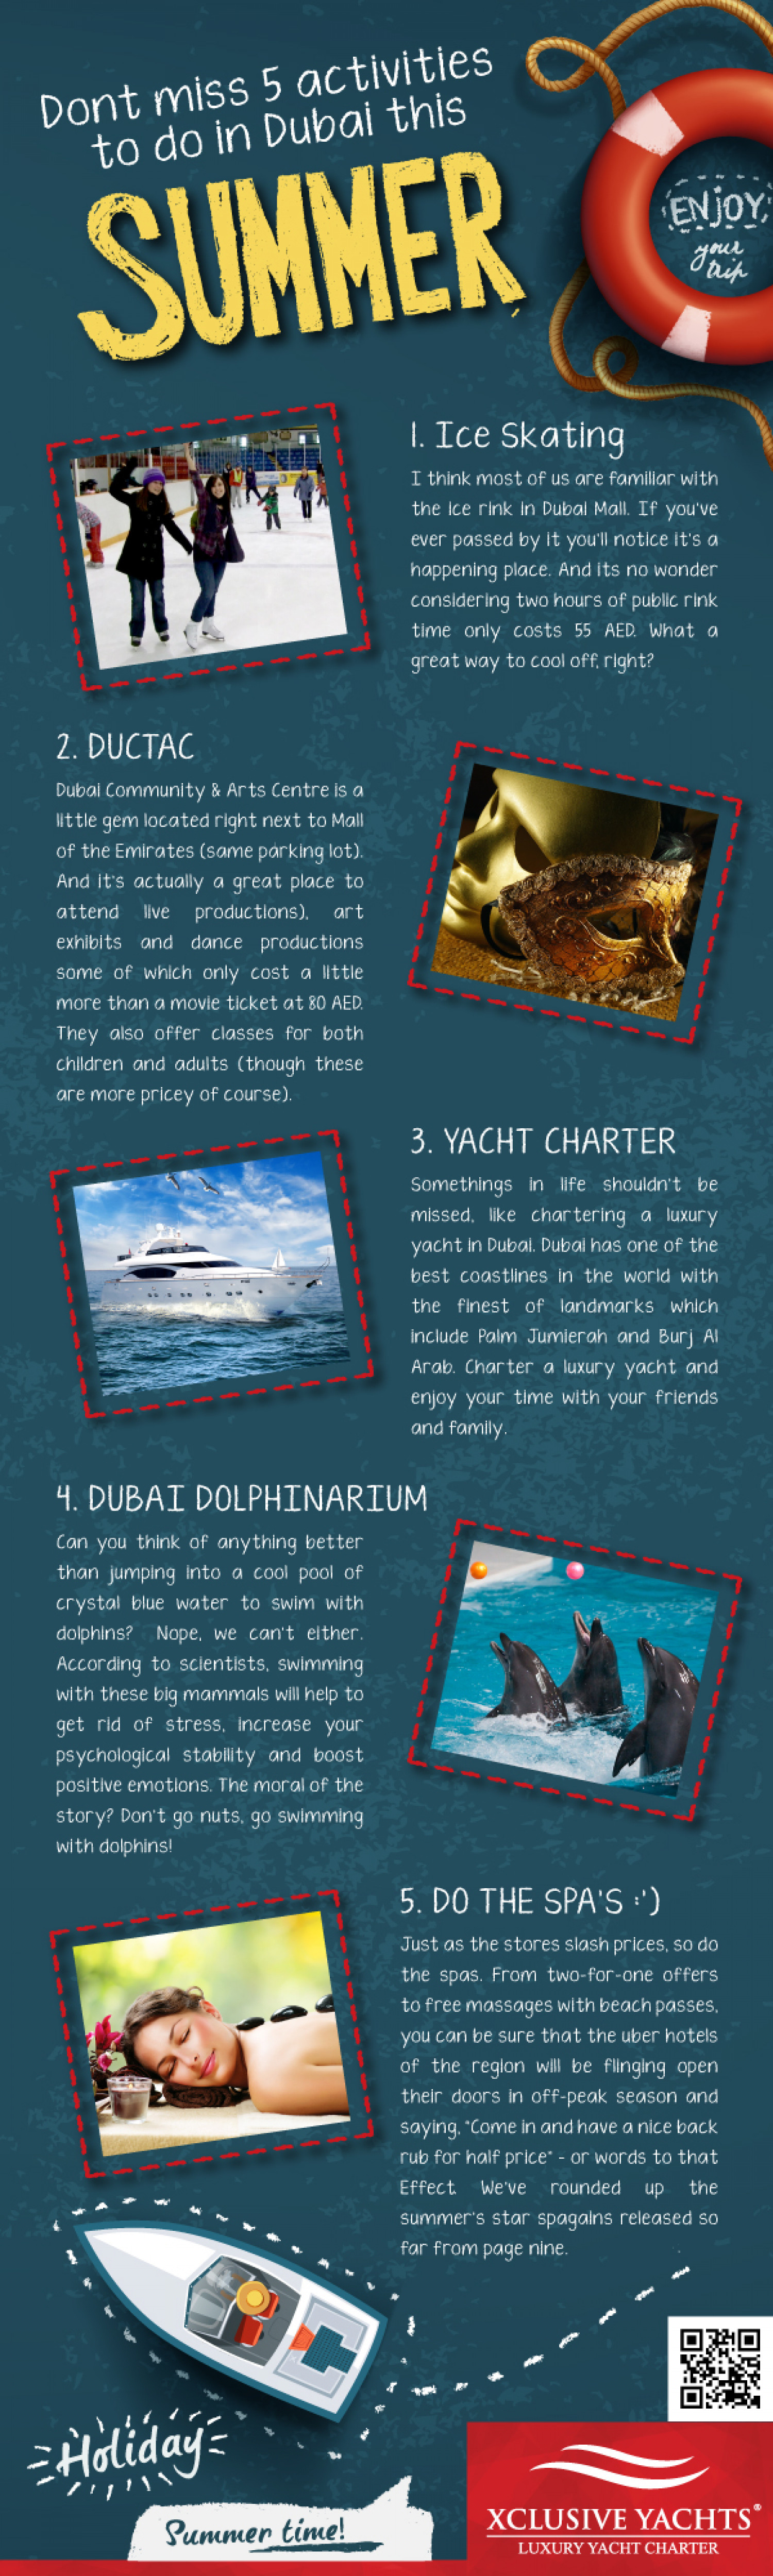 Dont Miss 5 Activities To Do In Dubai This Summer Infographic